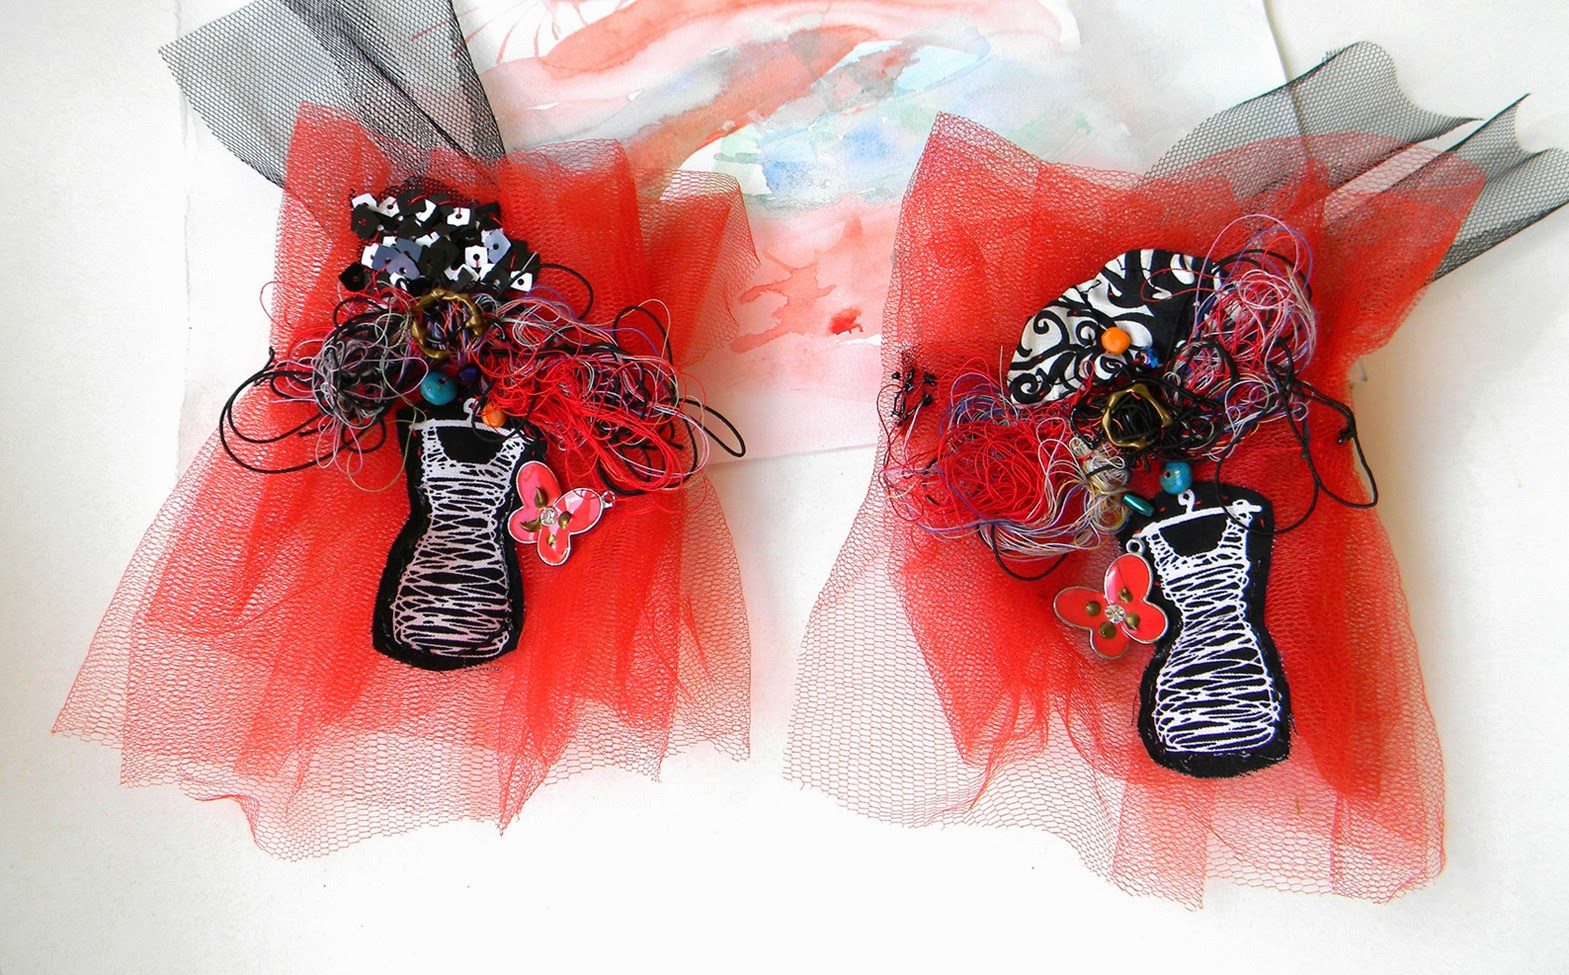 Tulle Wrist Cuffs, Textile Bracelets with Fiber Applique and Beads